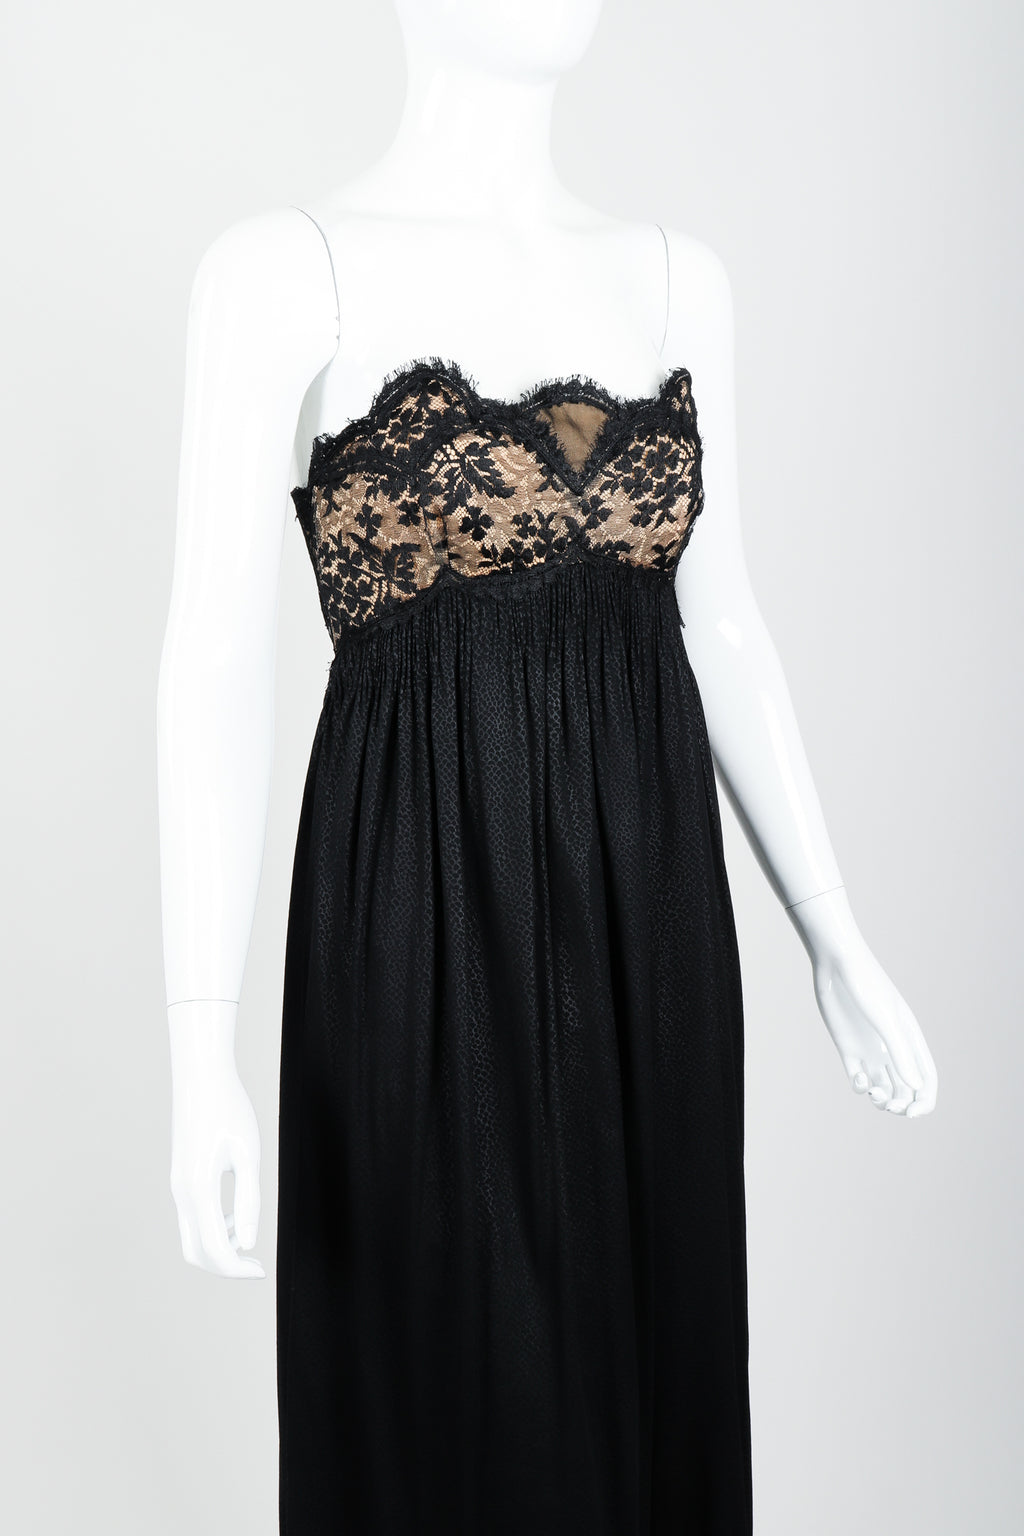 Vintage Geoffrey Beene Strapless Lace Empire Dress on Mannequin Crop at Recess Los Angeles